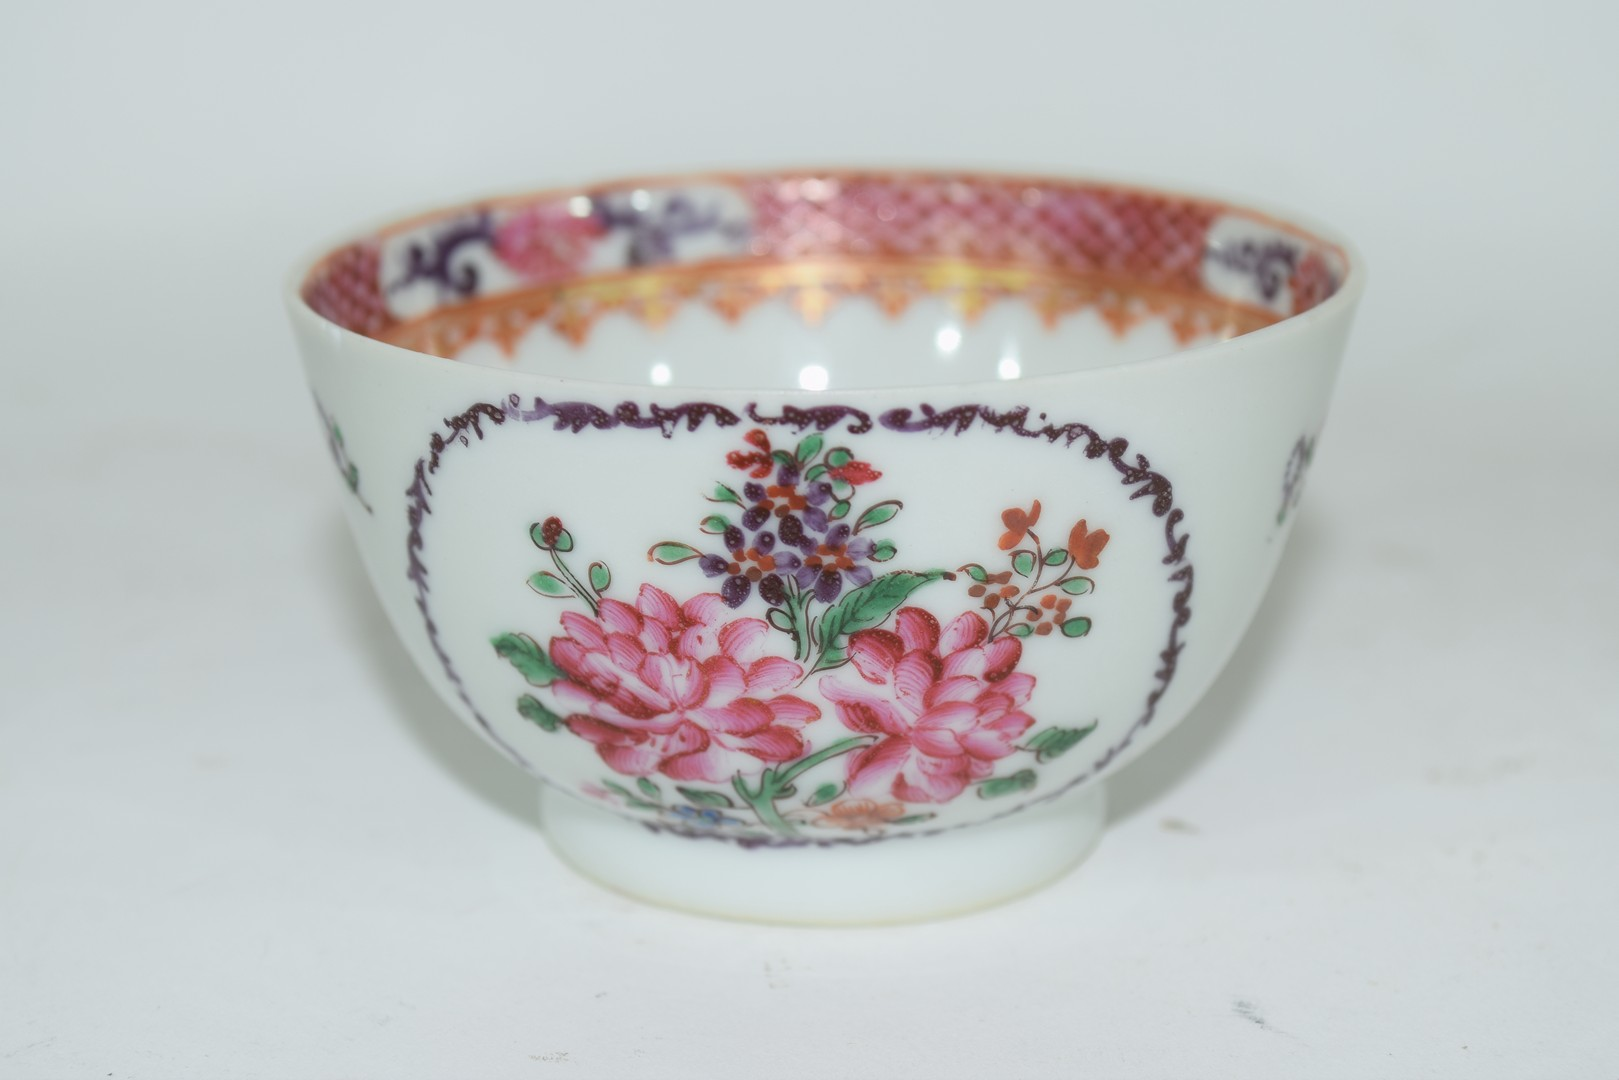 Continental porcelain cup and saucer decorated in Meissen style - Image 3 of 6